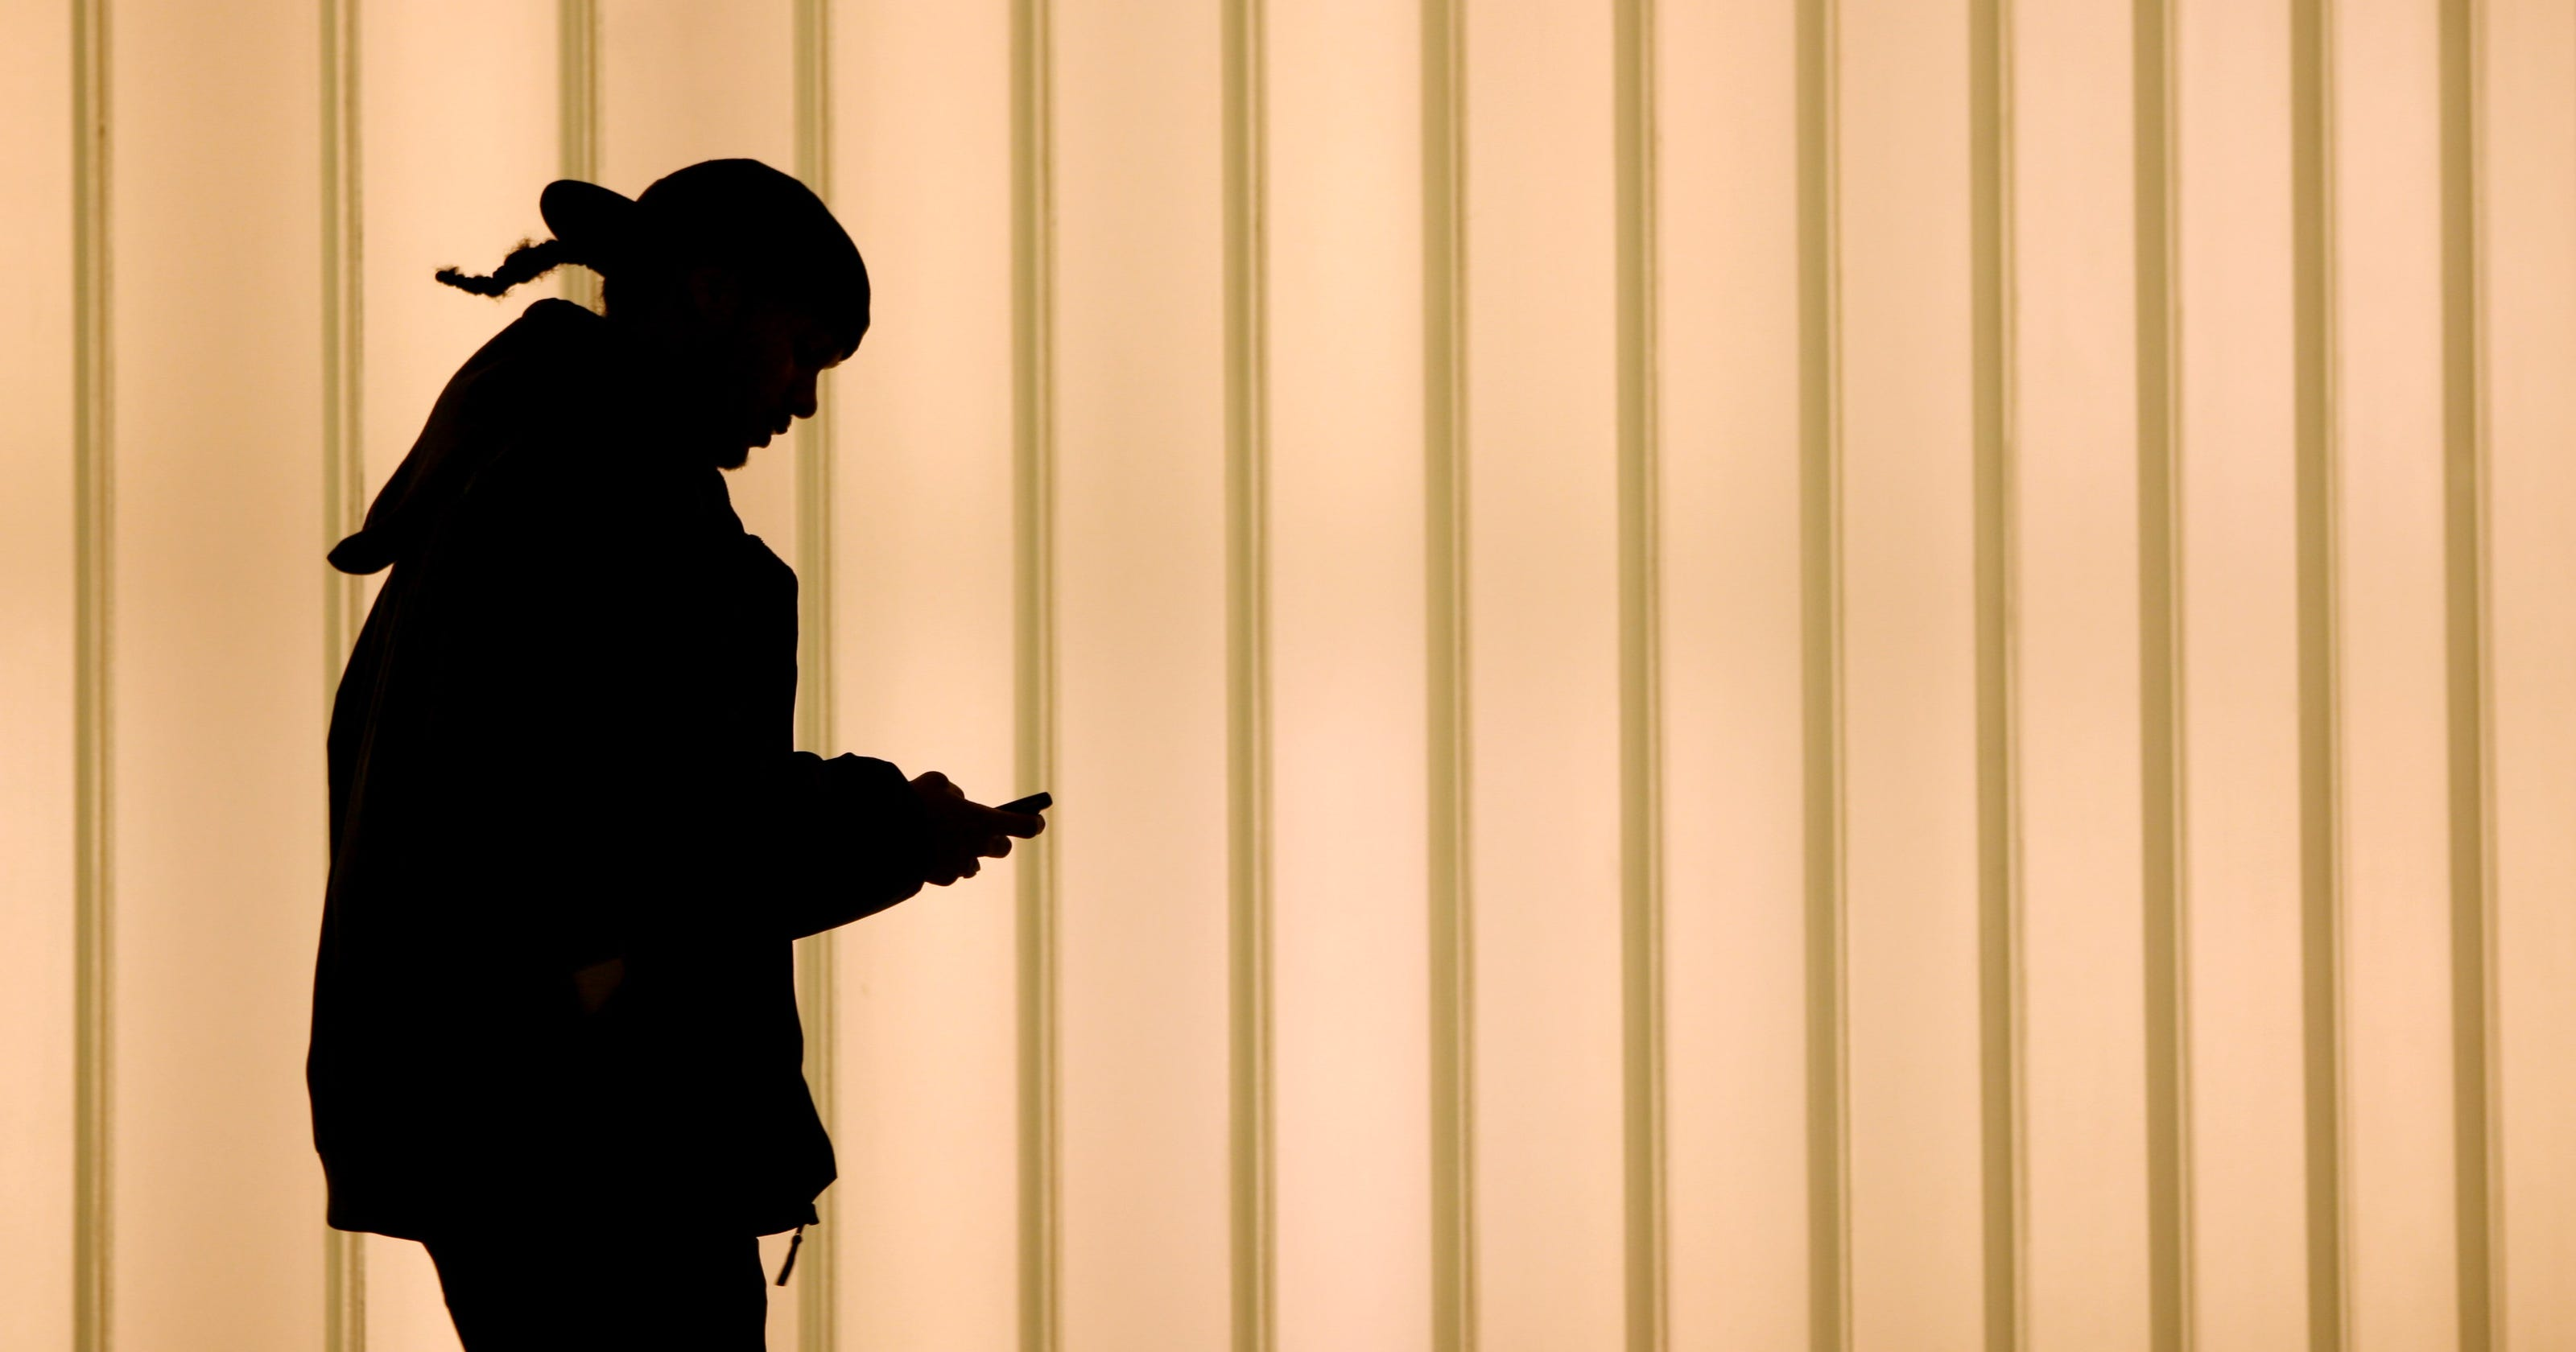 Stop robocalls and cell phone spam calls